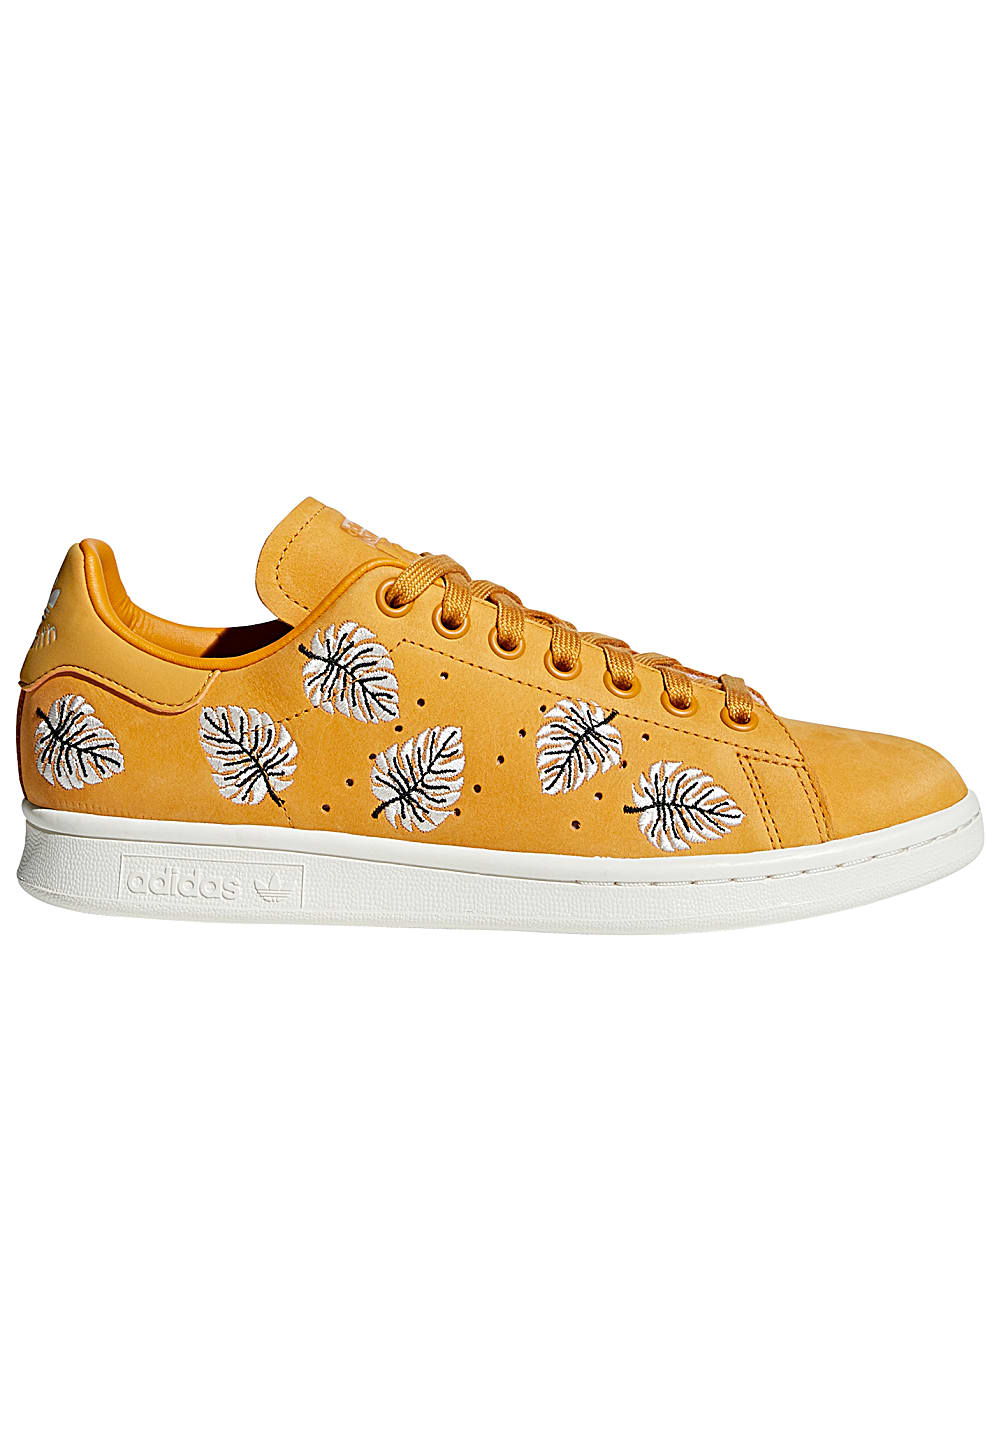 ADIDAS ORIGINALS Stan Smith - Sneakers for Women - Yellow